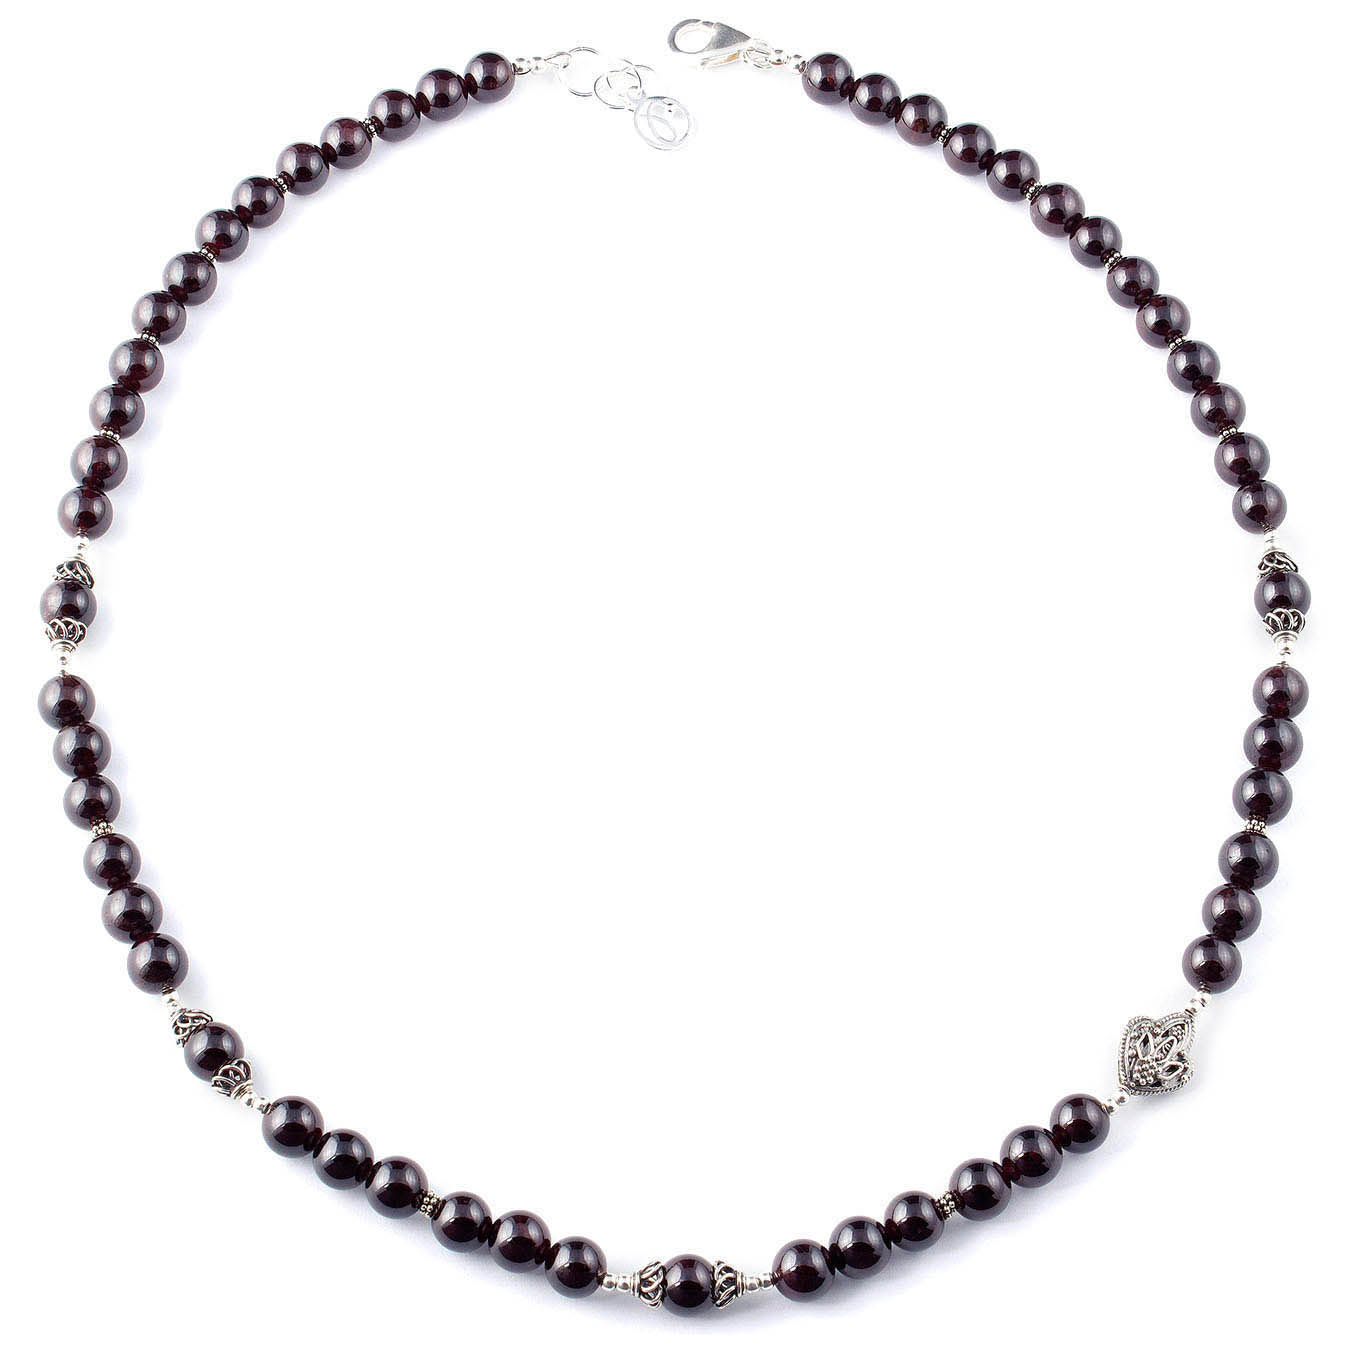 Handcrafted January birthstone bead necklace made of garnet and silver